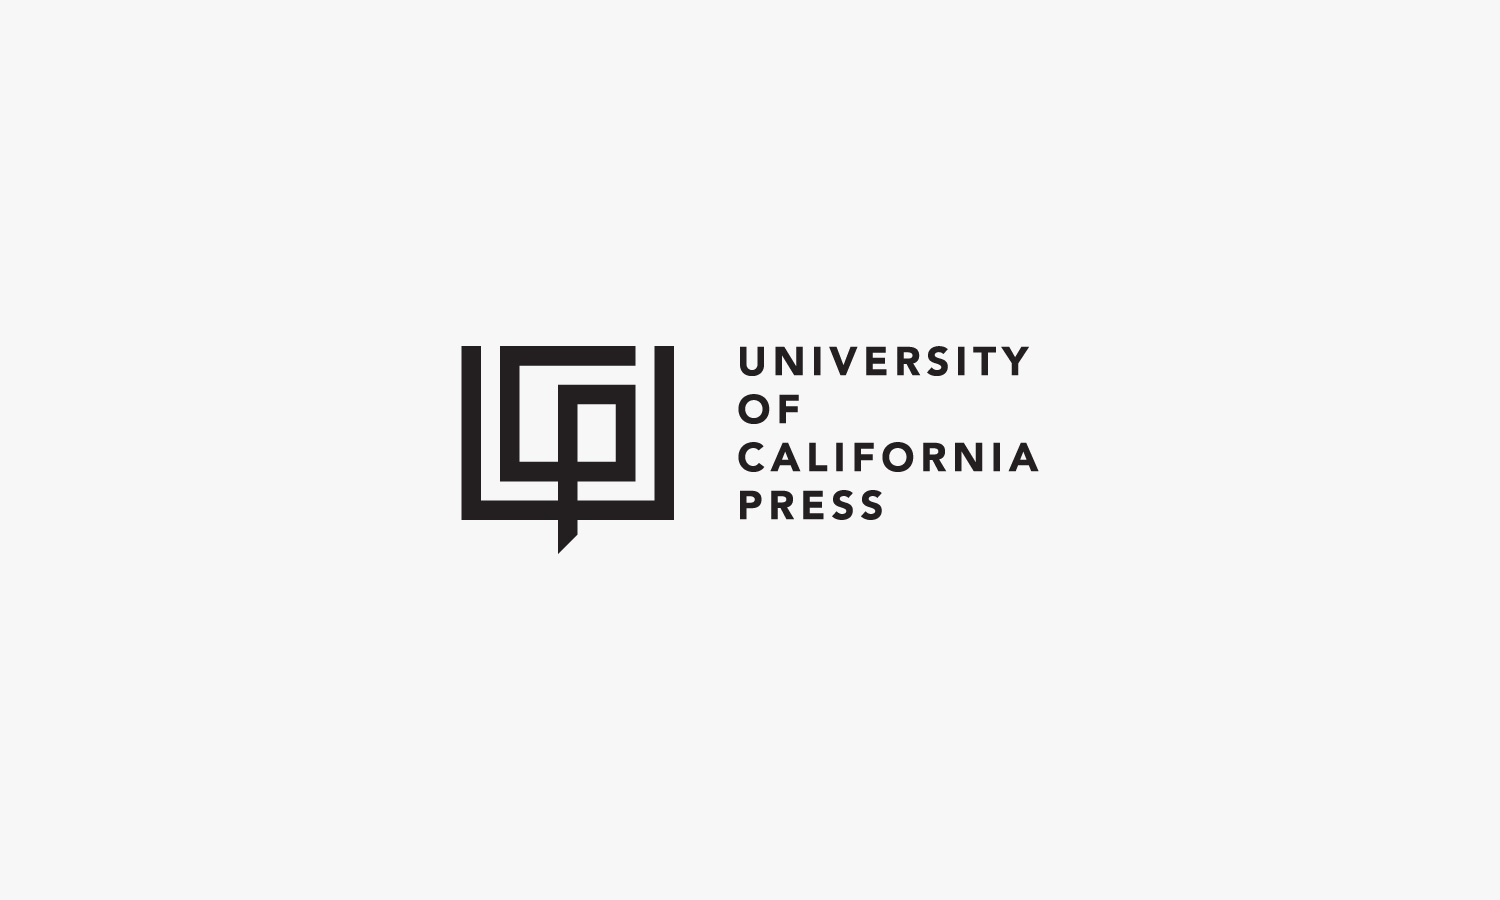 uc_press_logo.jpg